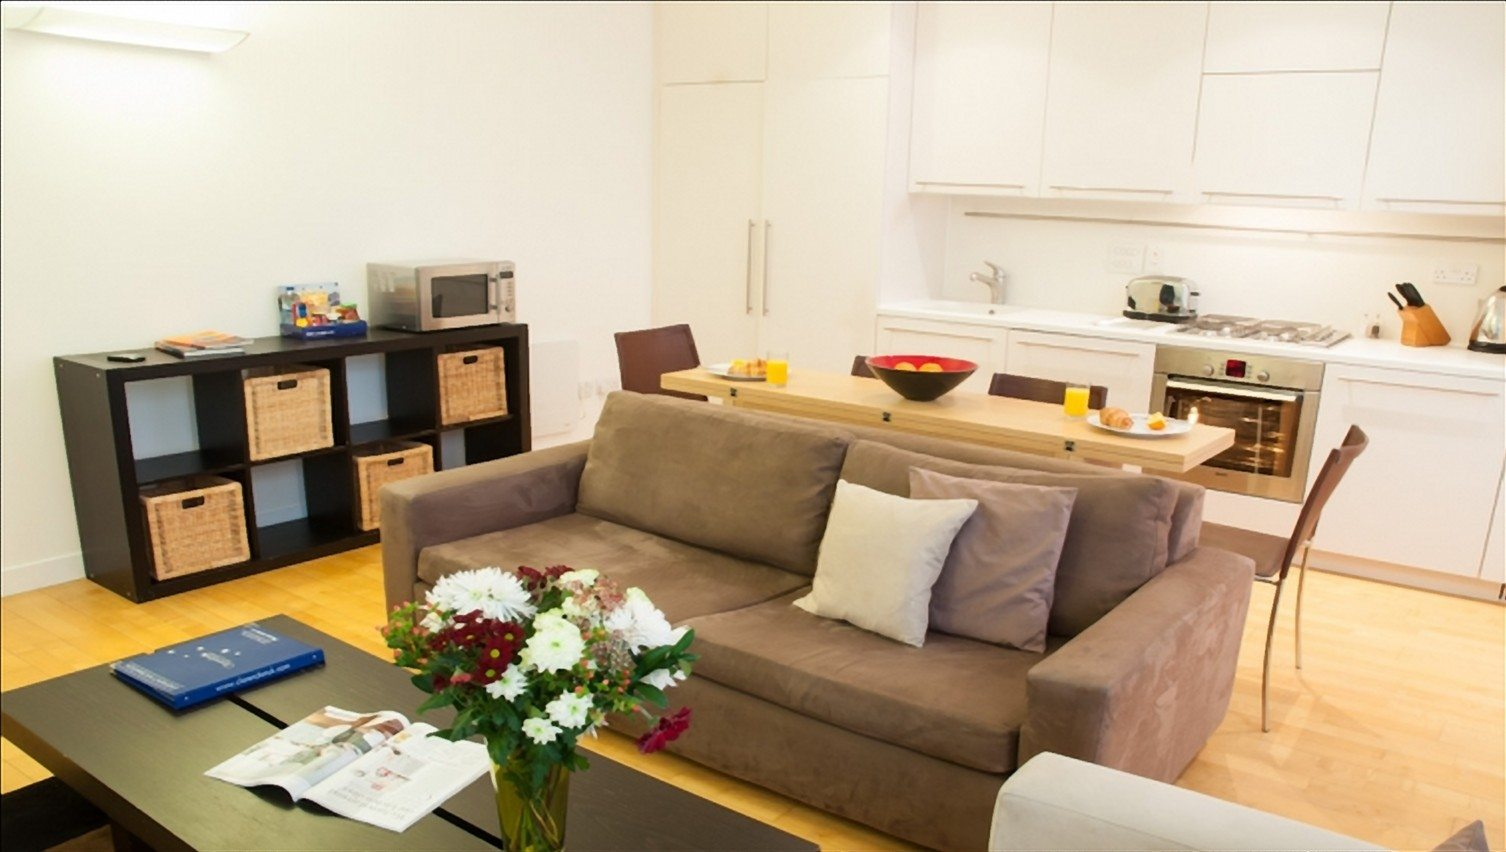 Serviced-Accommodation-Liverpool-Street---Steward-Street-Apartments-Kitchen-and-Living-Room